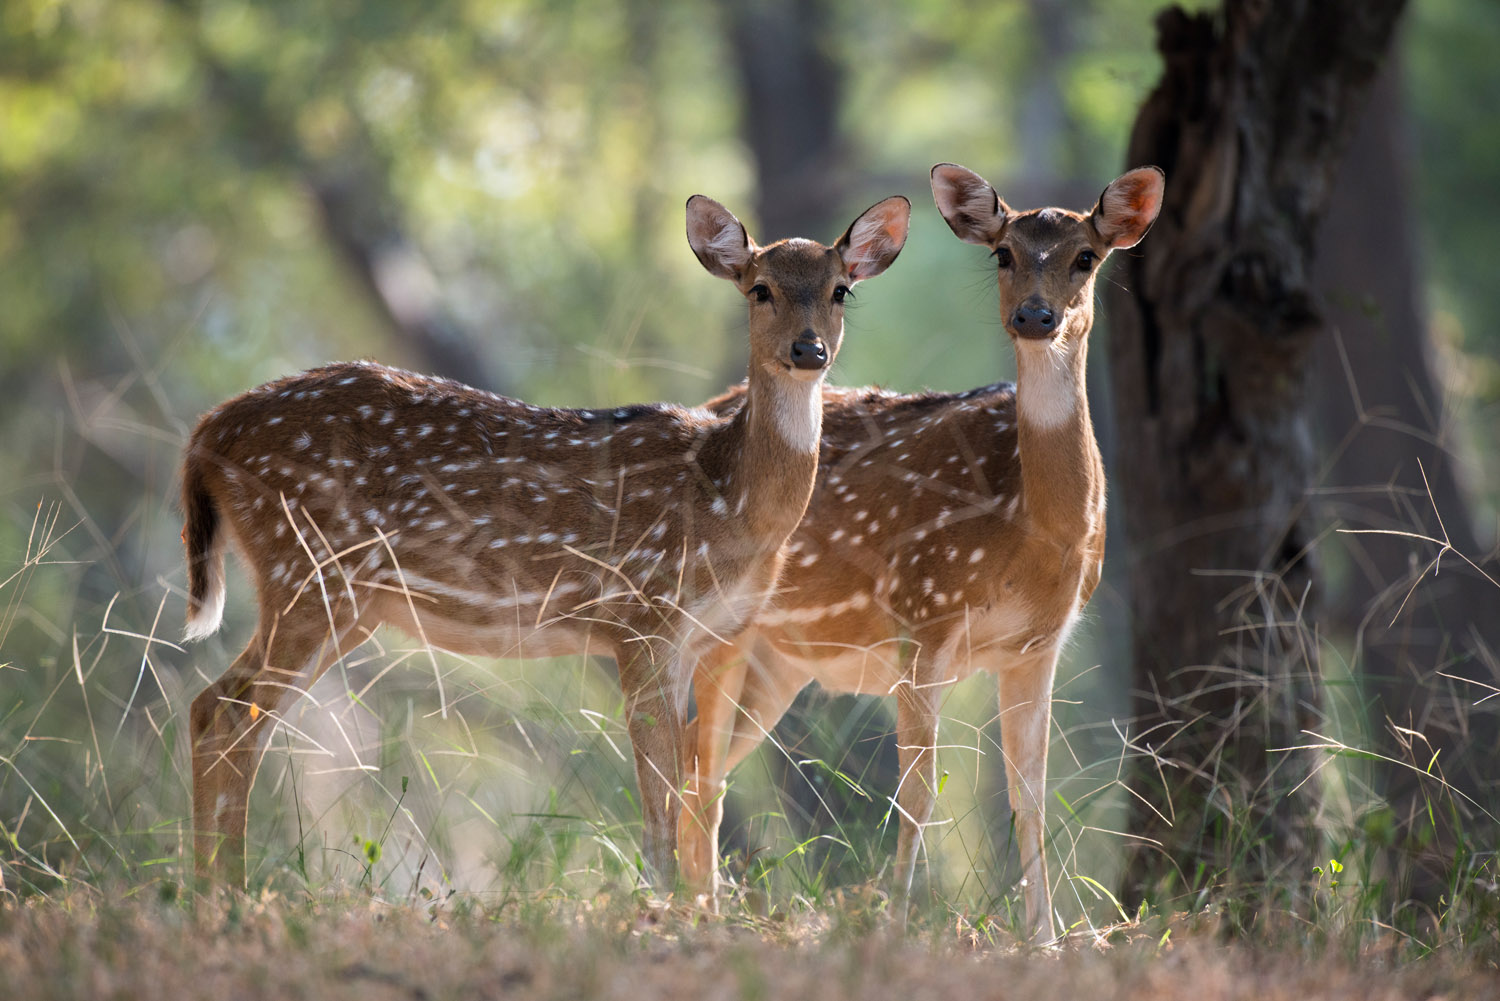 Chital/spotted deer on alert, Ranthambhore National Park, Rajasthan, India